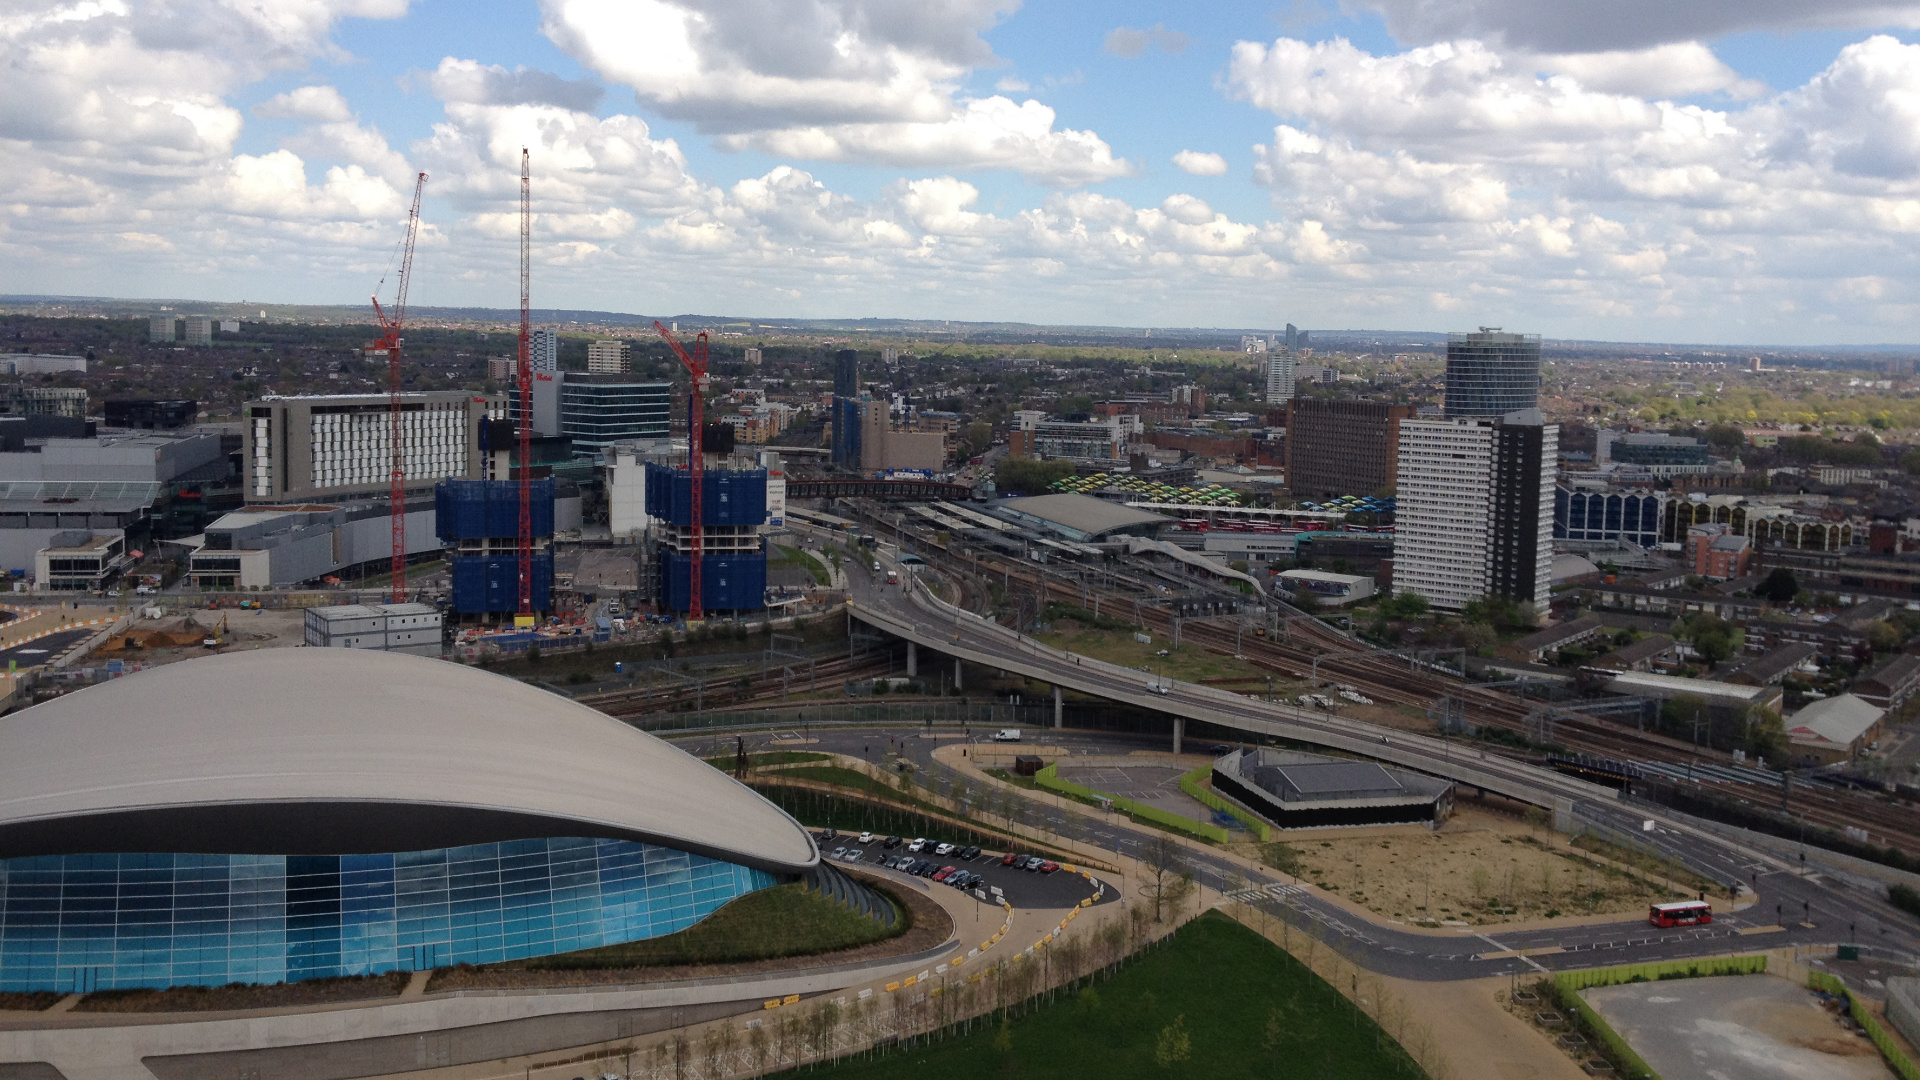 Olympic Park, London, Apr 27, 2015, by Aaron Lee, 05 Orbit Ldn view